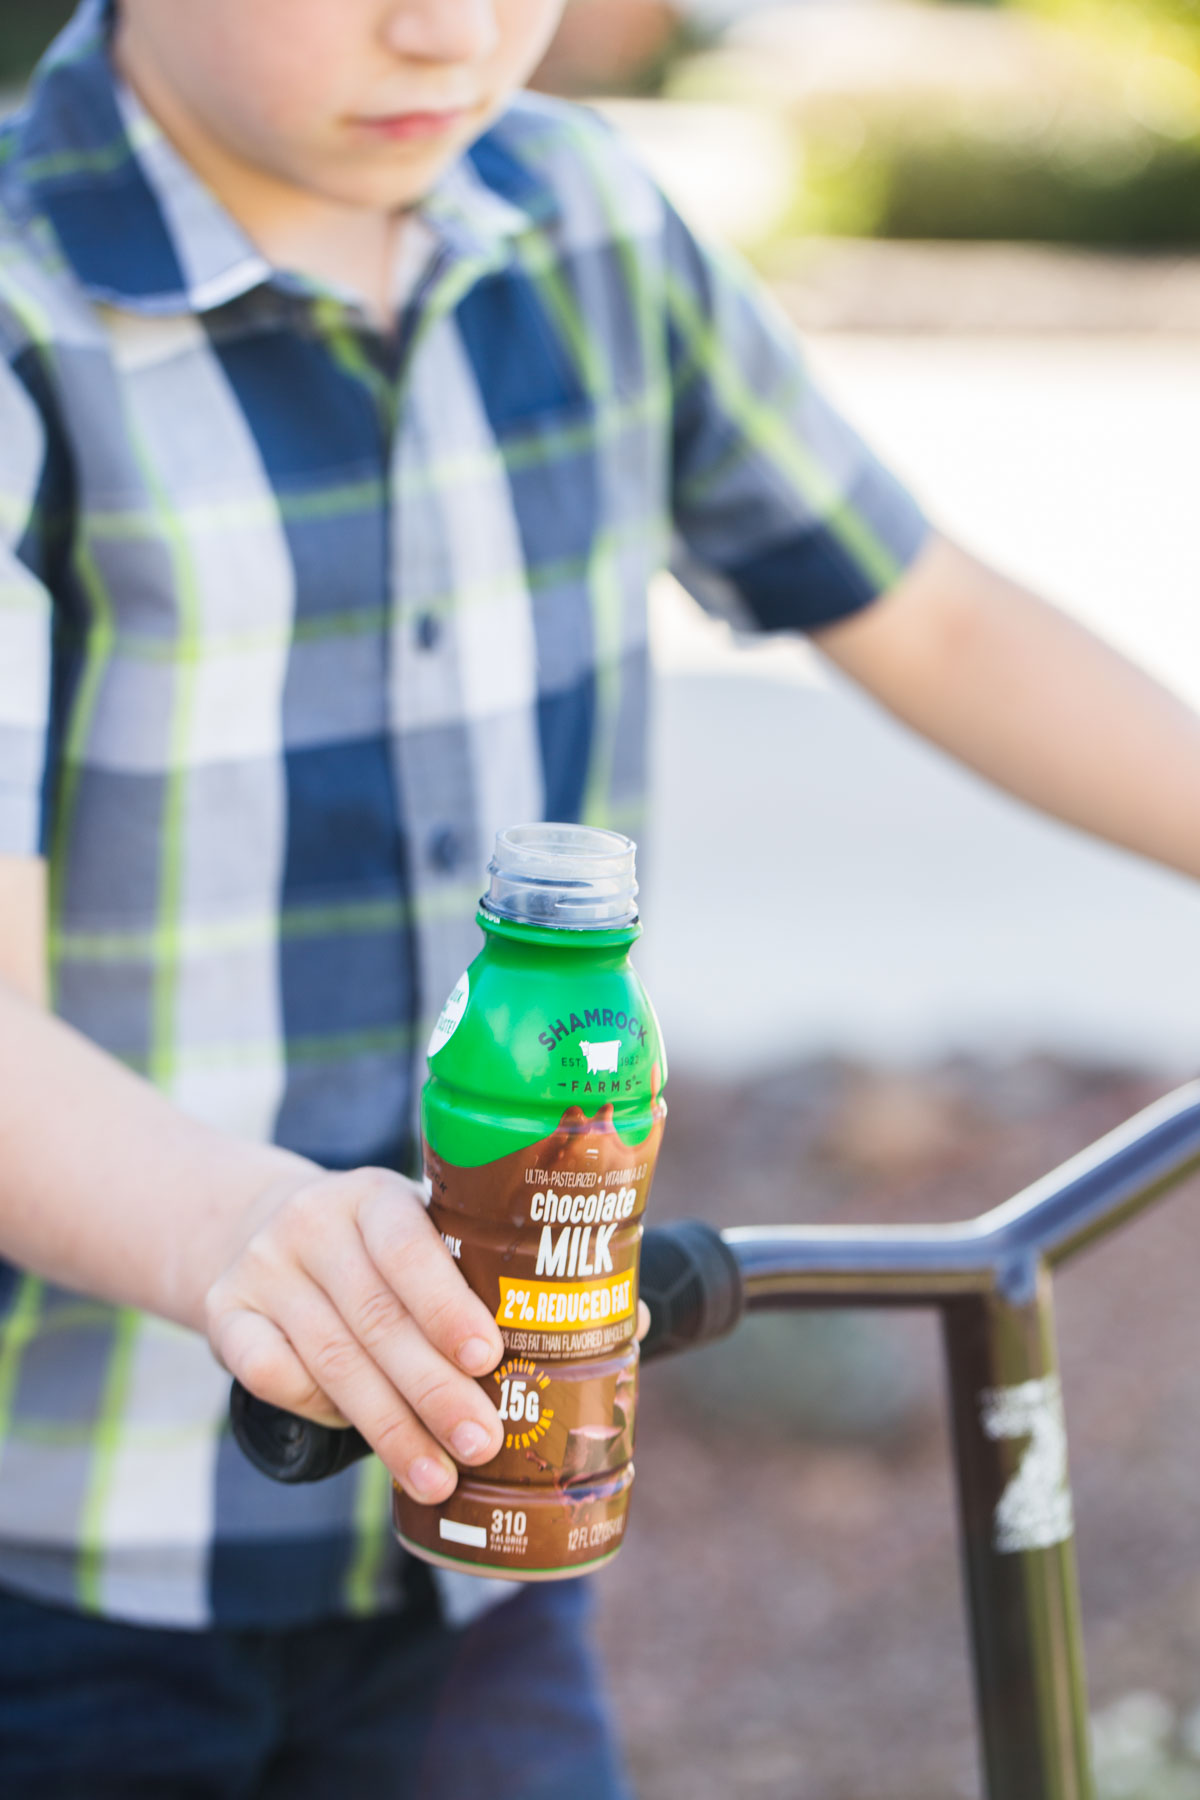 Boy riding a scooter with a single serve chocolate milk in one hand.